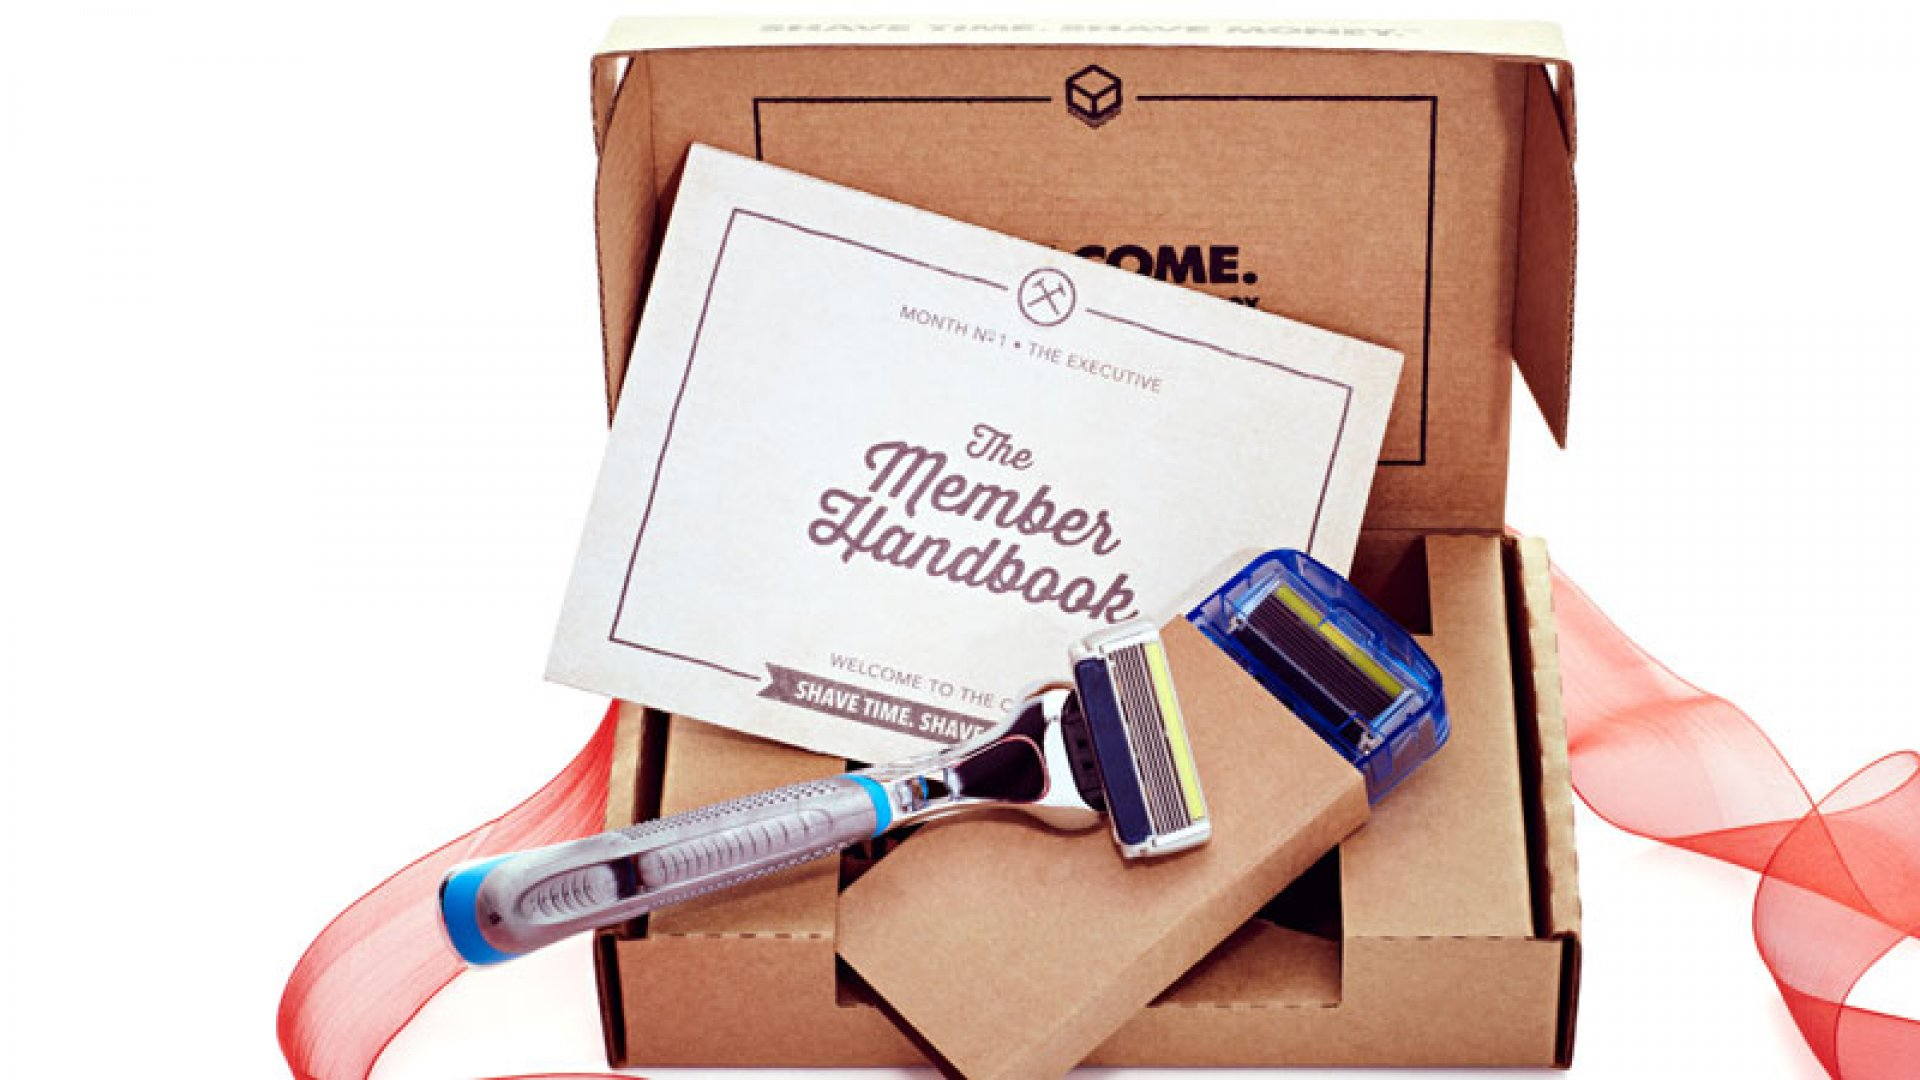 Unilever Agrees to Buy Dollar Shave Club for Reported $1 Billion